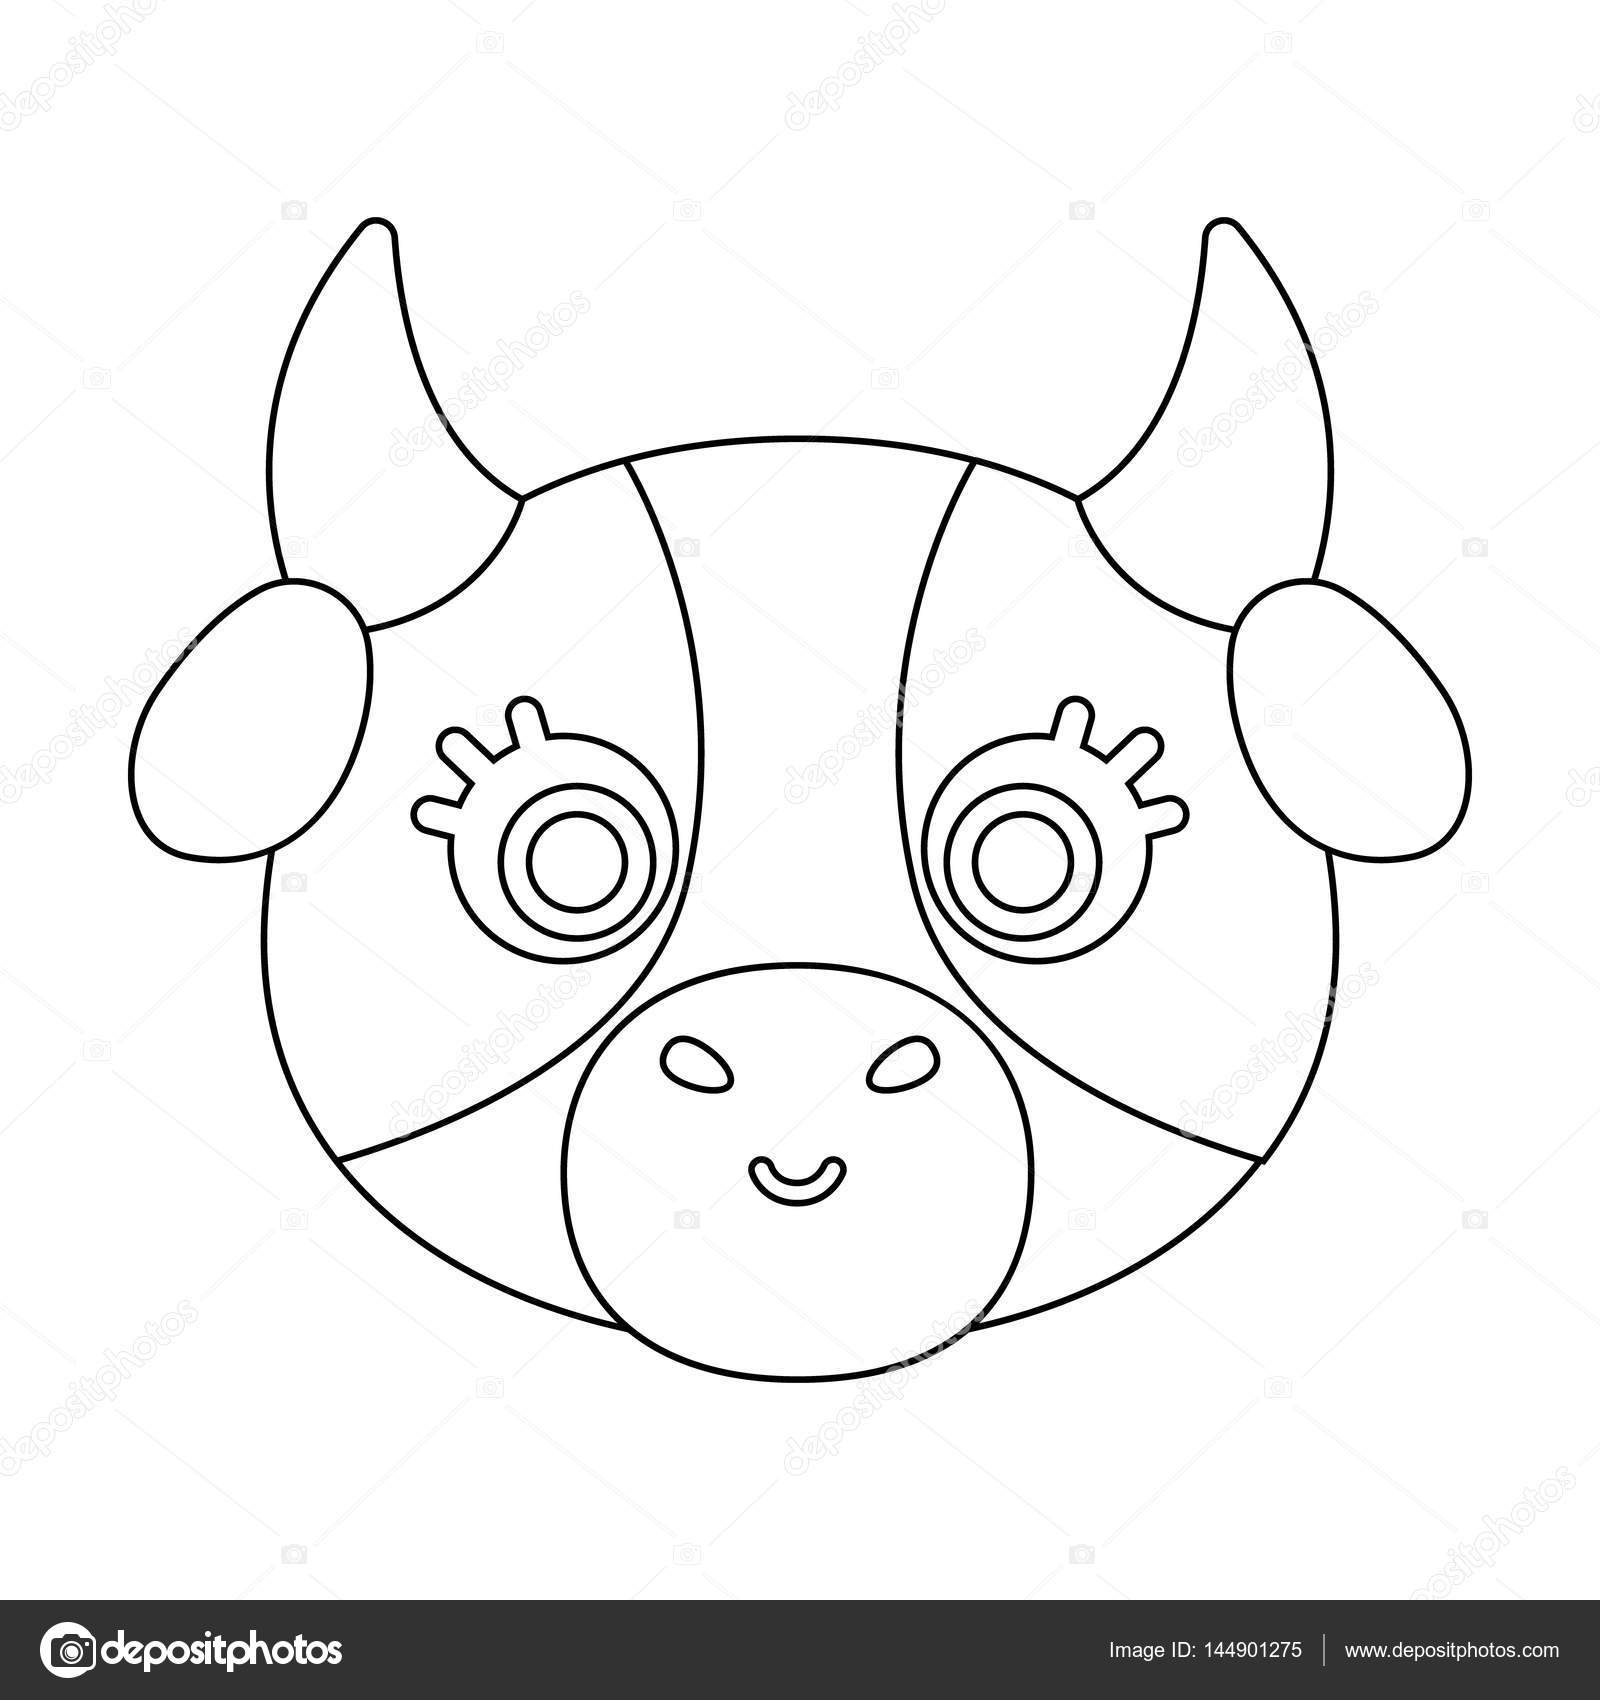 Cow Muzzle Icon In Outline Style Isolated On White Background